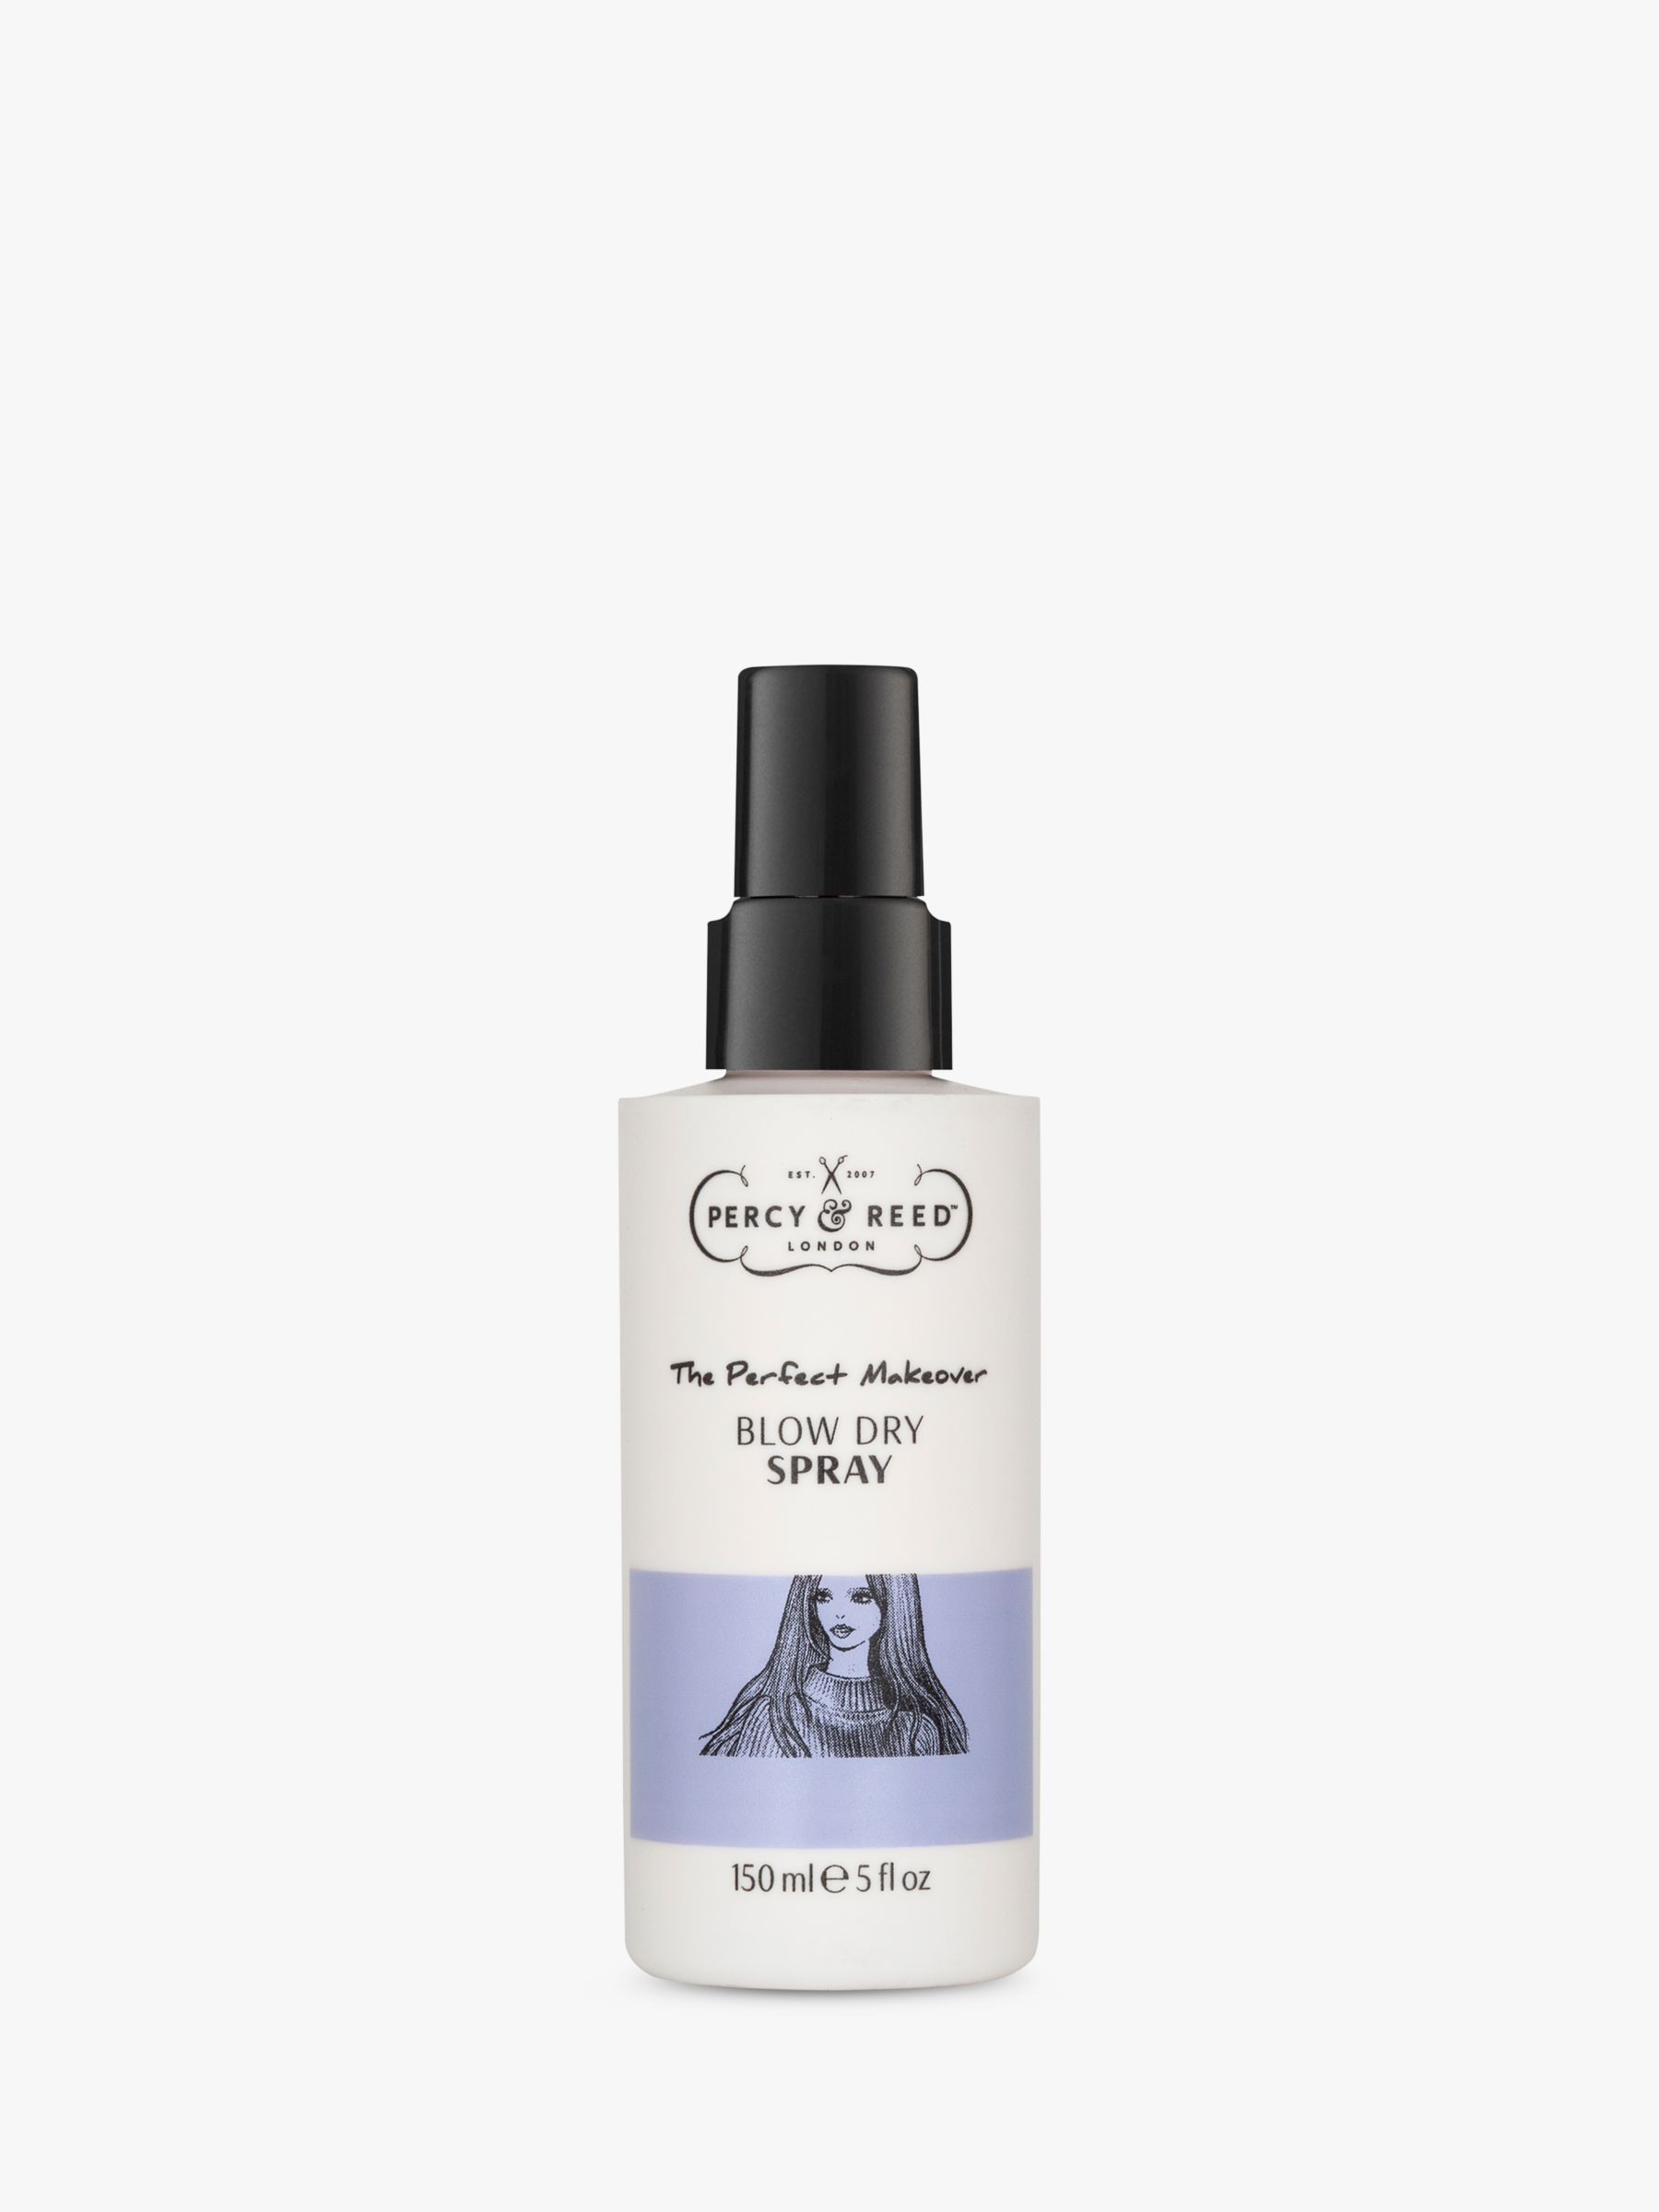 Percy & Reed Percy & Reed The Perfect Blow Dry Makeover Spray, 150ml